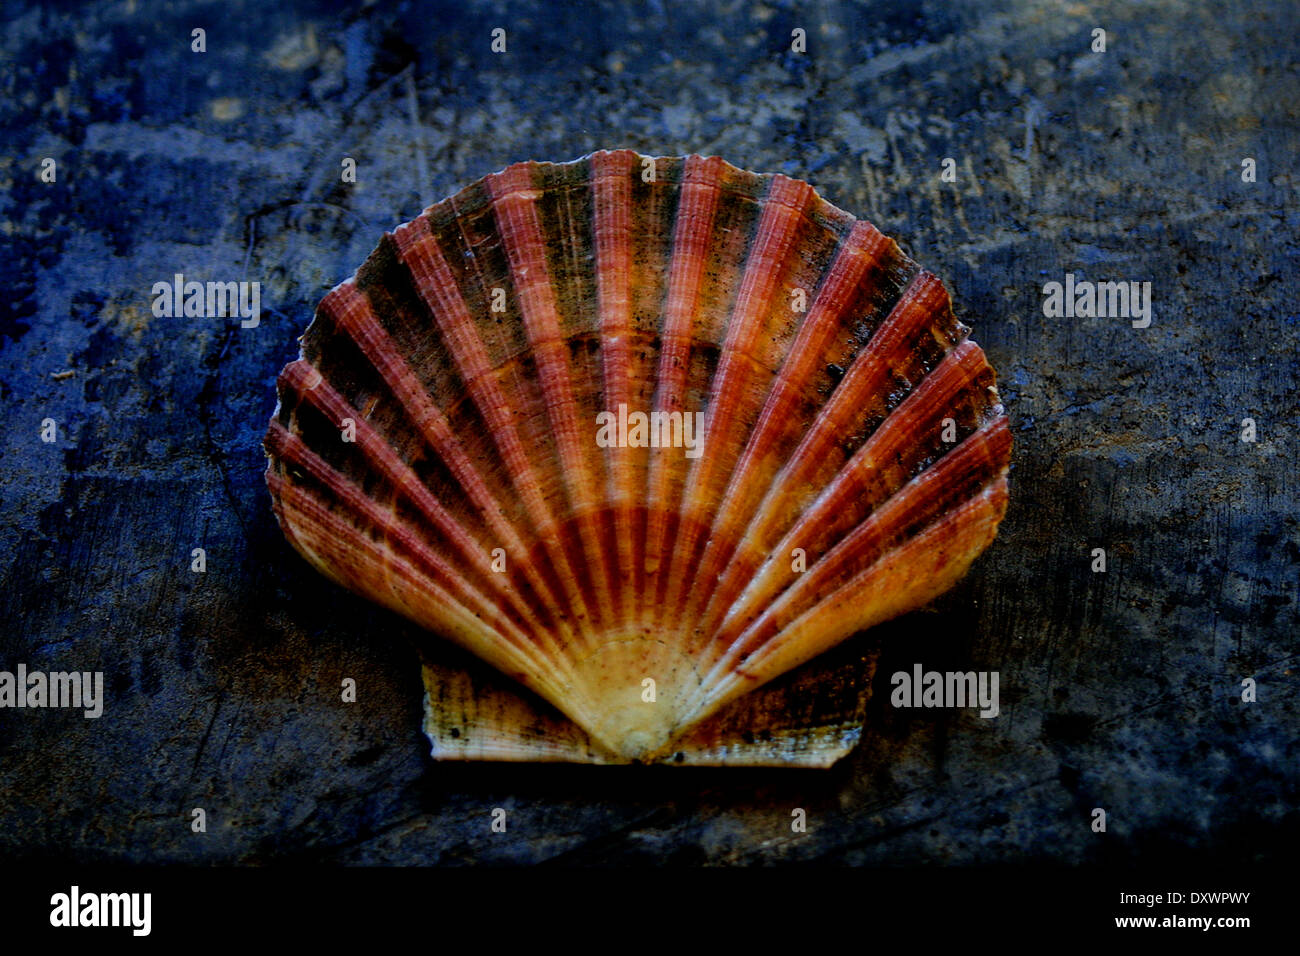 Scallop Shell Symbol Of Saint Jacques Stock Photo 68178935 Alamy